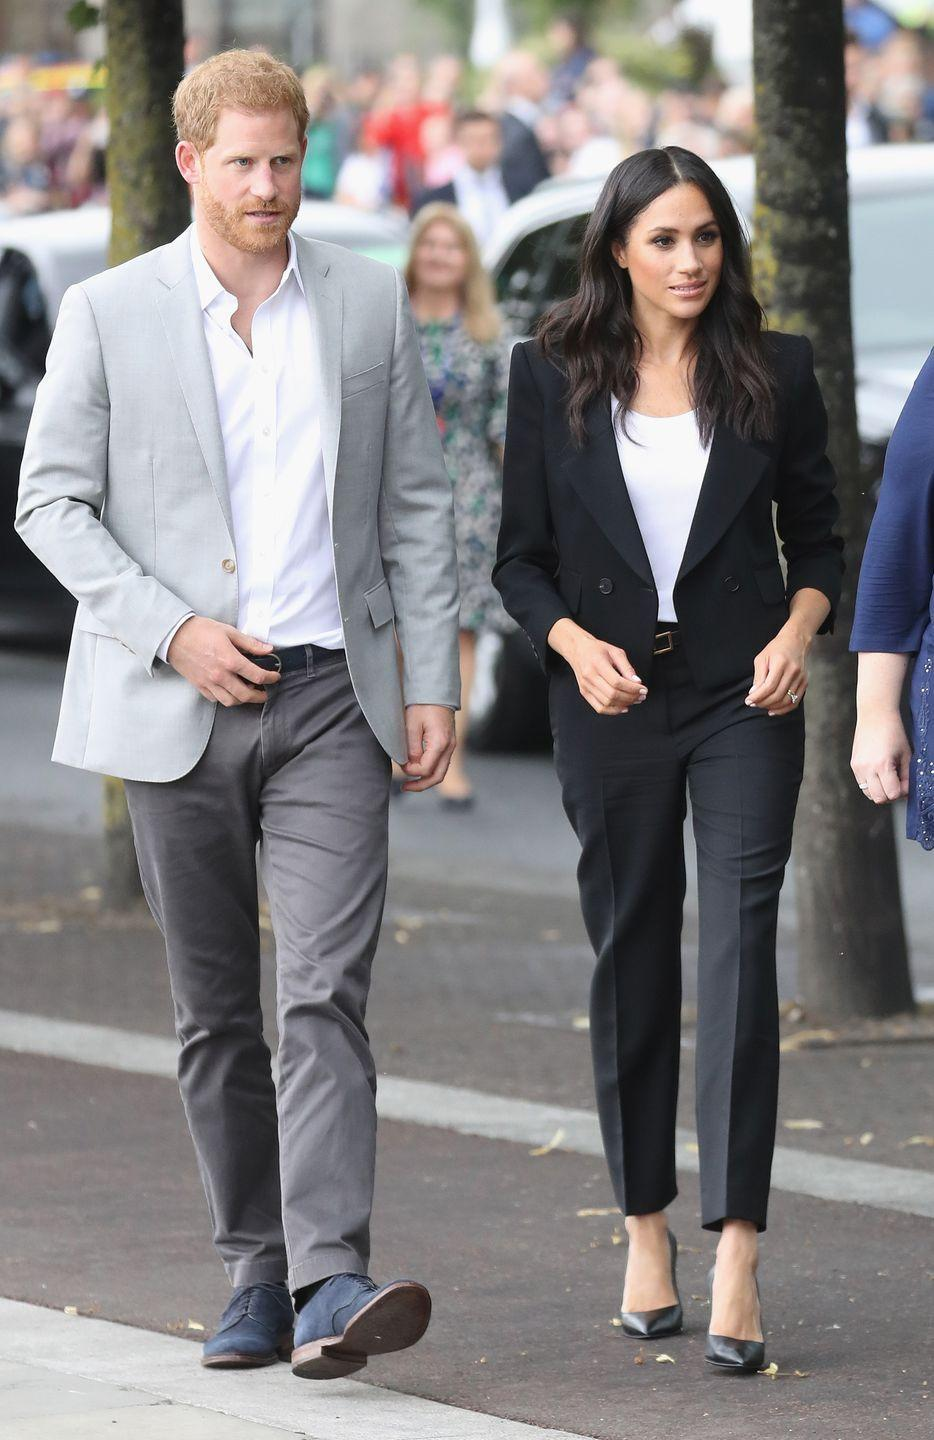 <p>The Californian beauty changed into a bespoke fitted black suit and white tee by Givenchy during her trip to Ireland. She coordinated the outfit with a gold buckle Givenchy belt, as well as carrying a £1,690 Givenchy clutch bag and a pair of black Sarah Flint stilettos. </p>